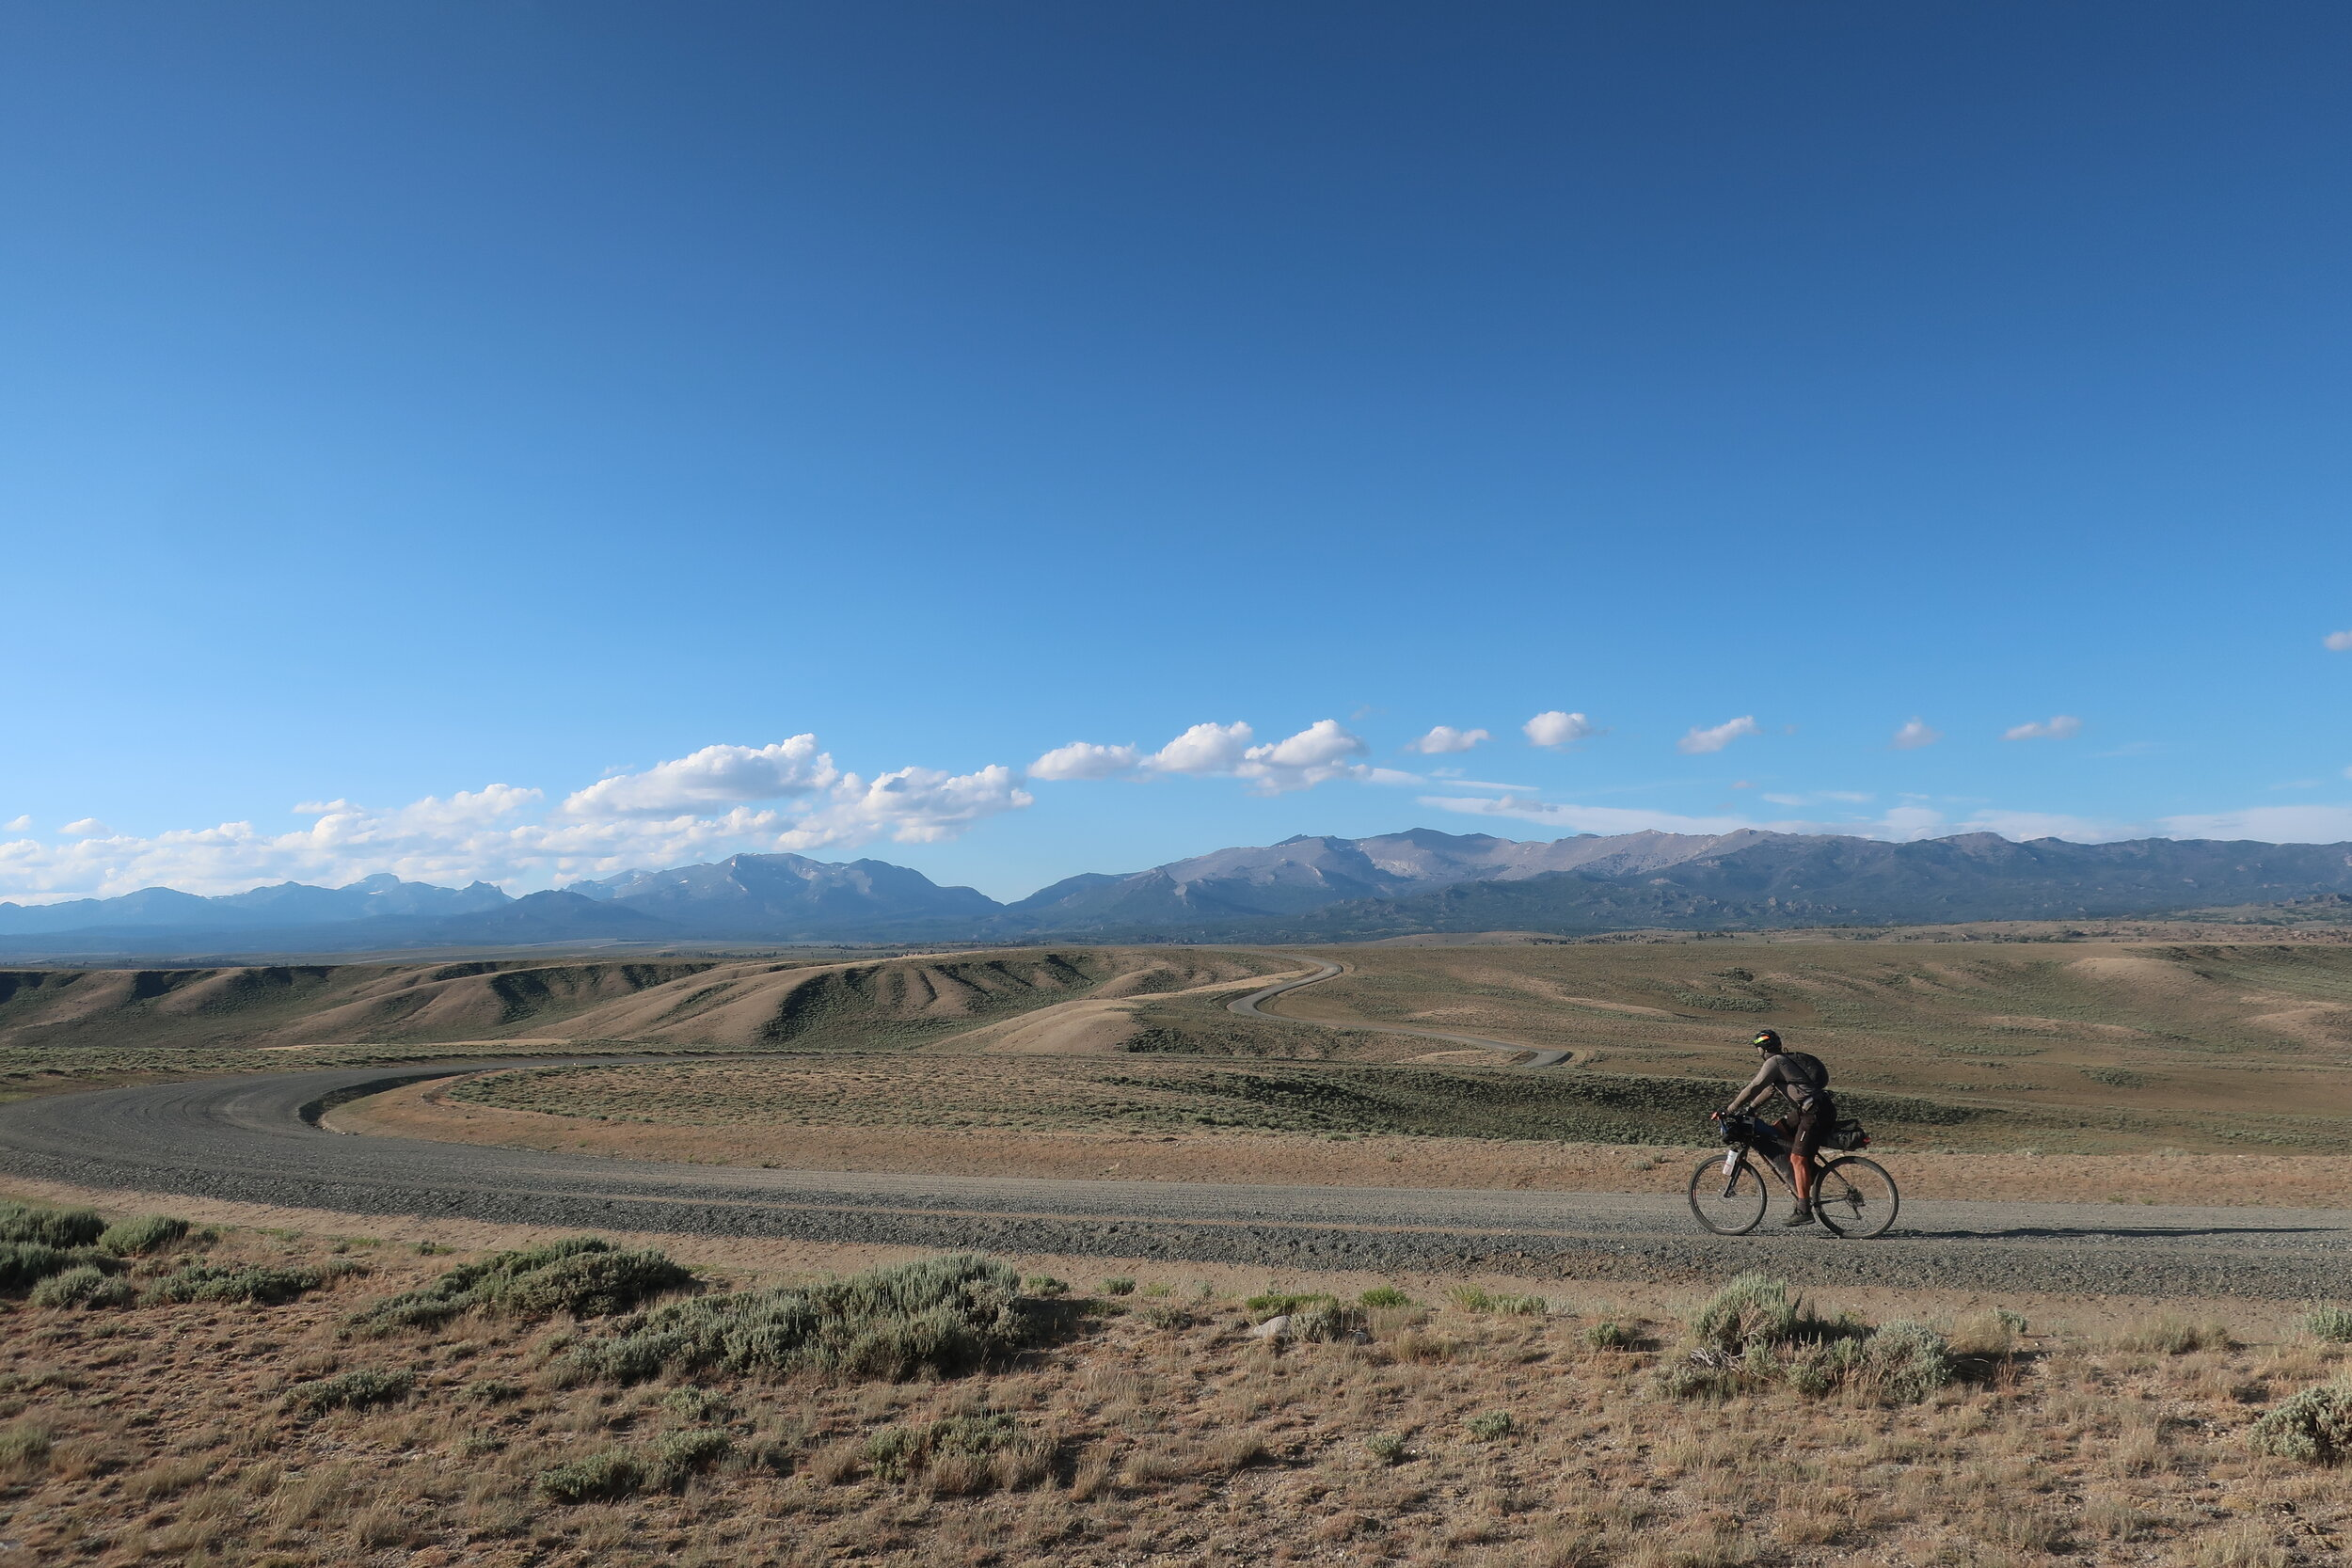 Heading around the southwest end of the Wind Range on the Lander Cutoff Road